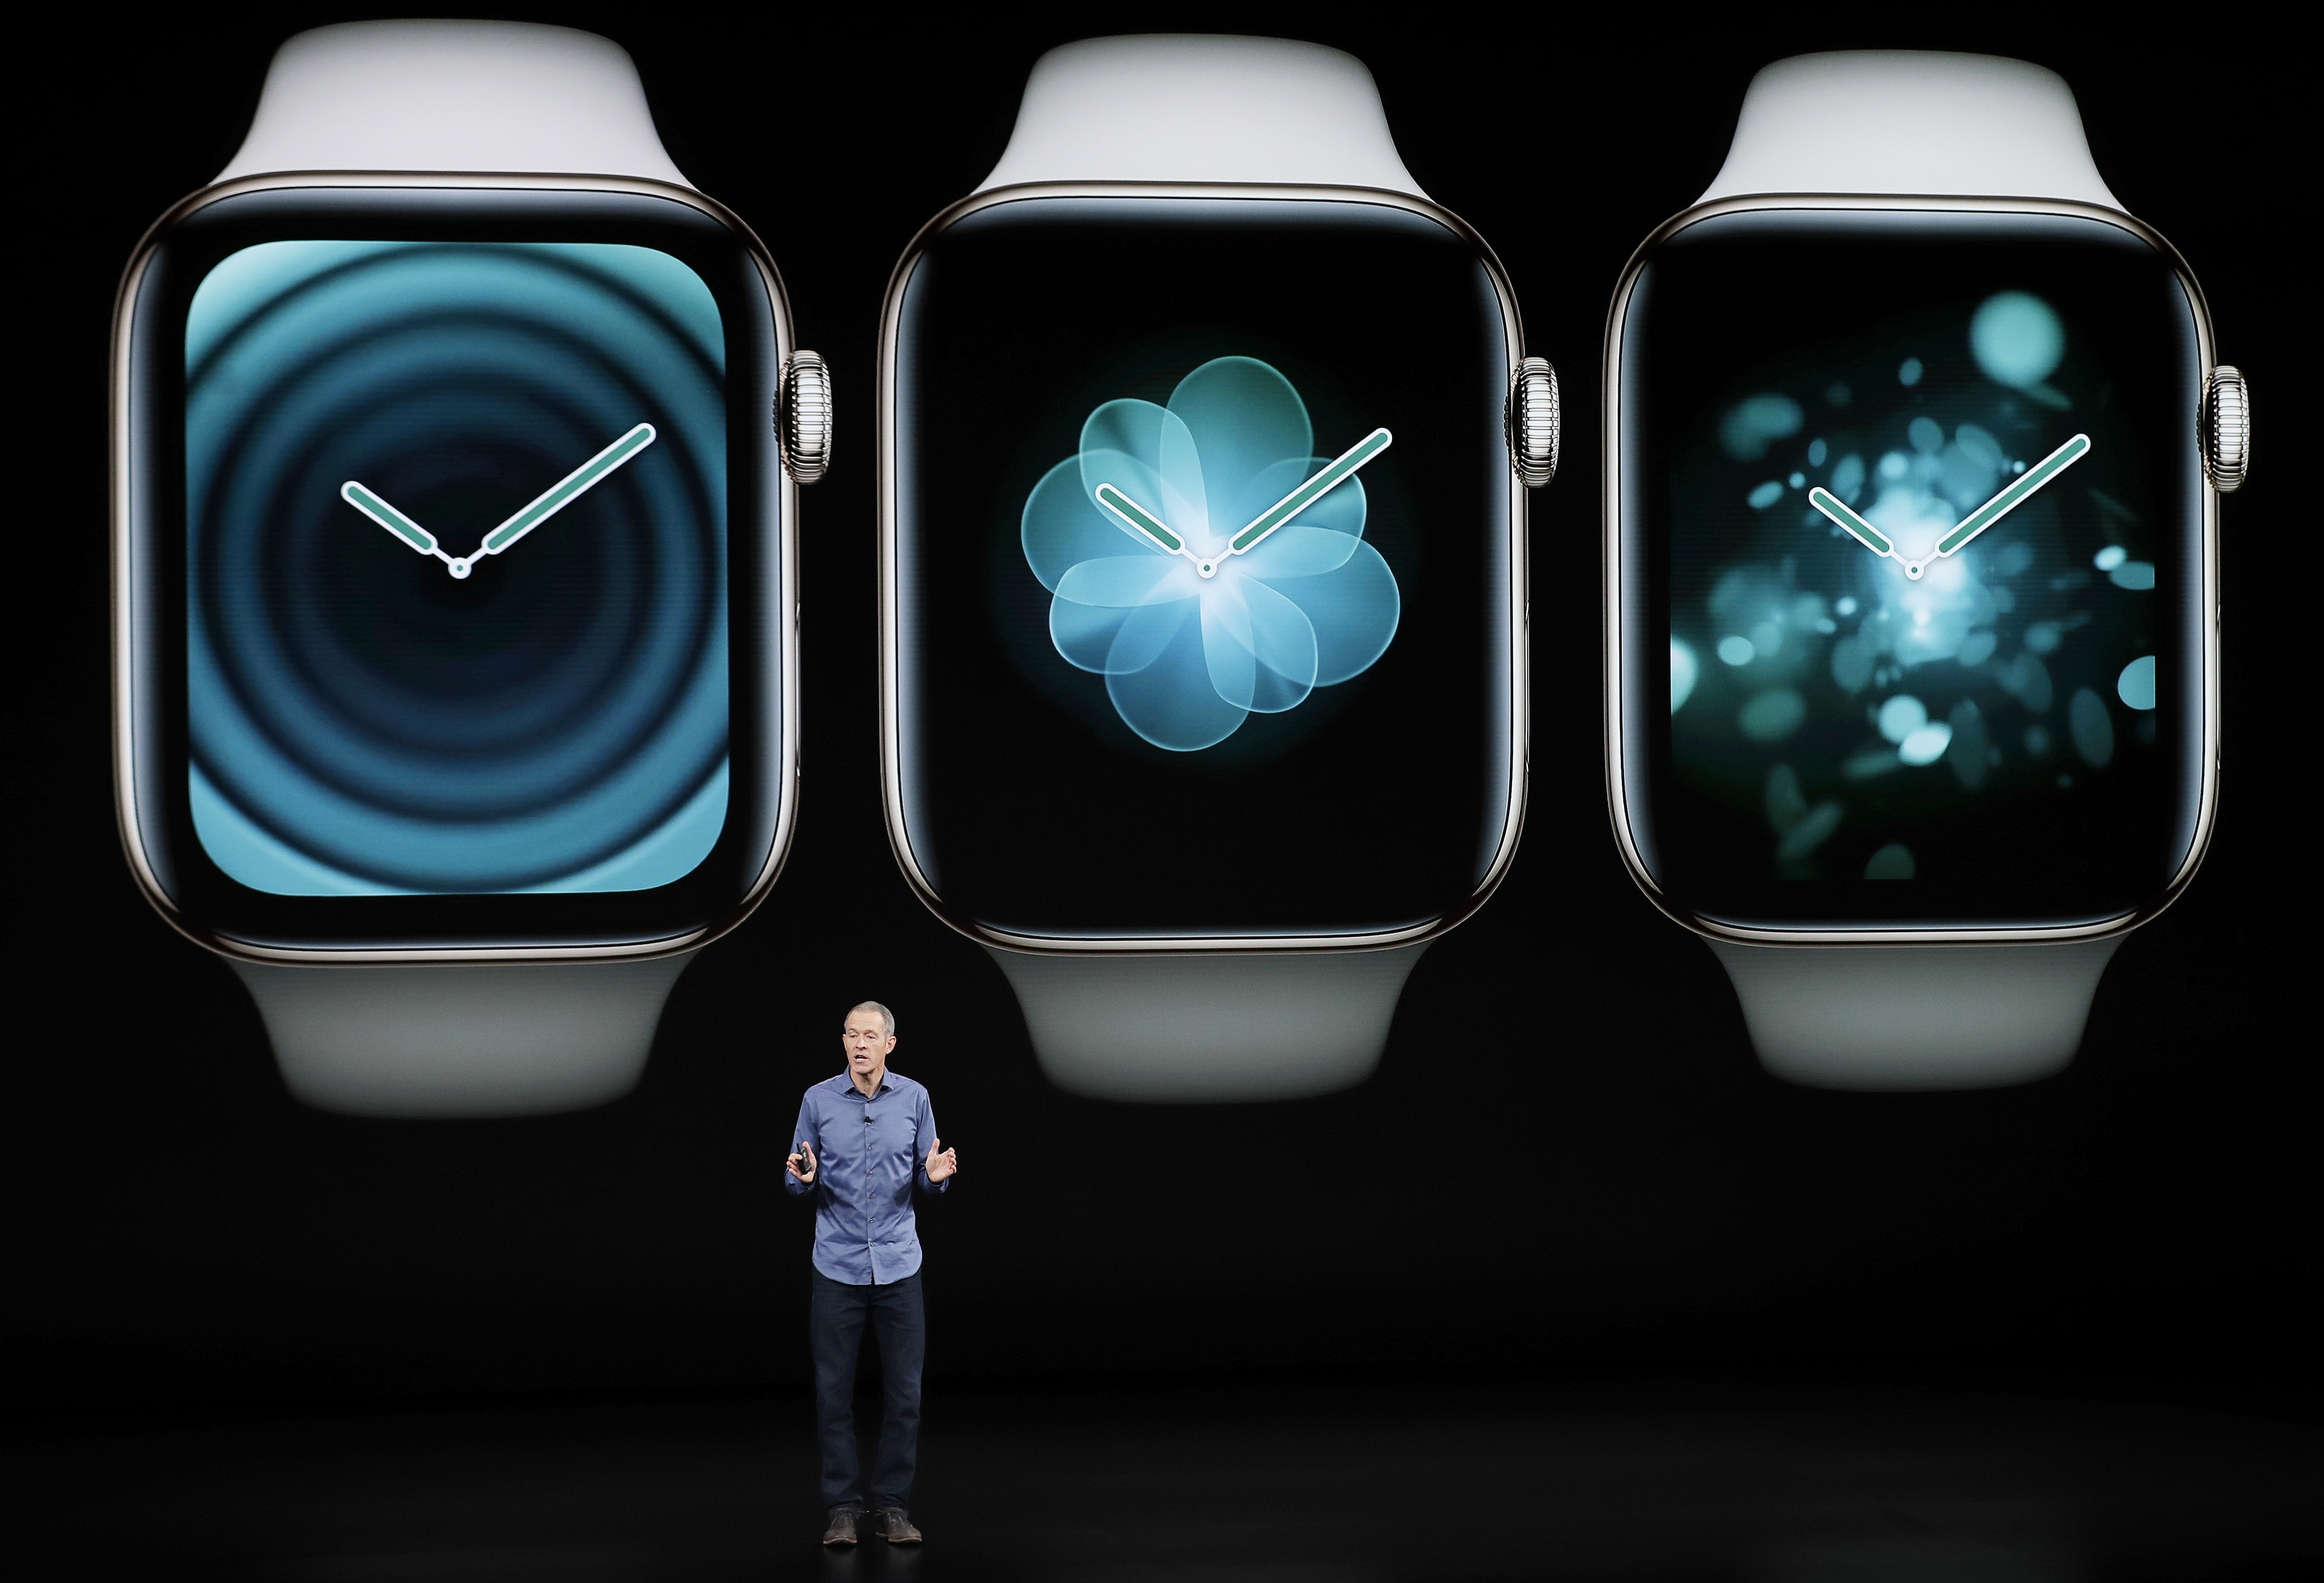 Jeff Williams, Apple's chief operating officer, speaks about the Apple Watch Series 4 at the Steve Jobs Theater during an event to announce new Apple products Wednesday, Sept. 12, 2018, in Cupertino, Calif - AP